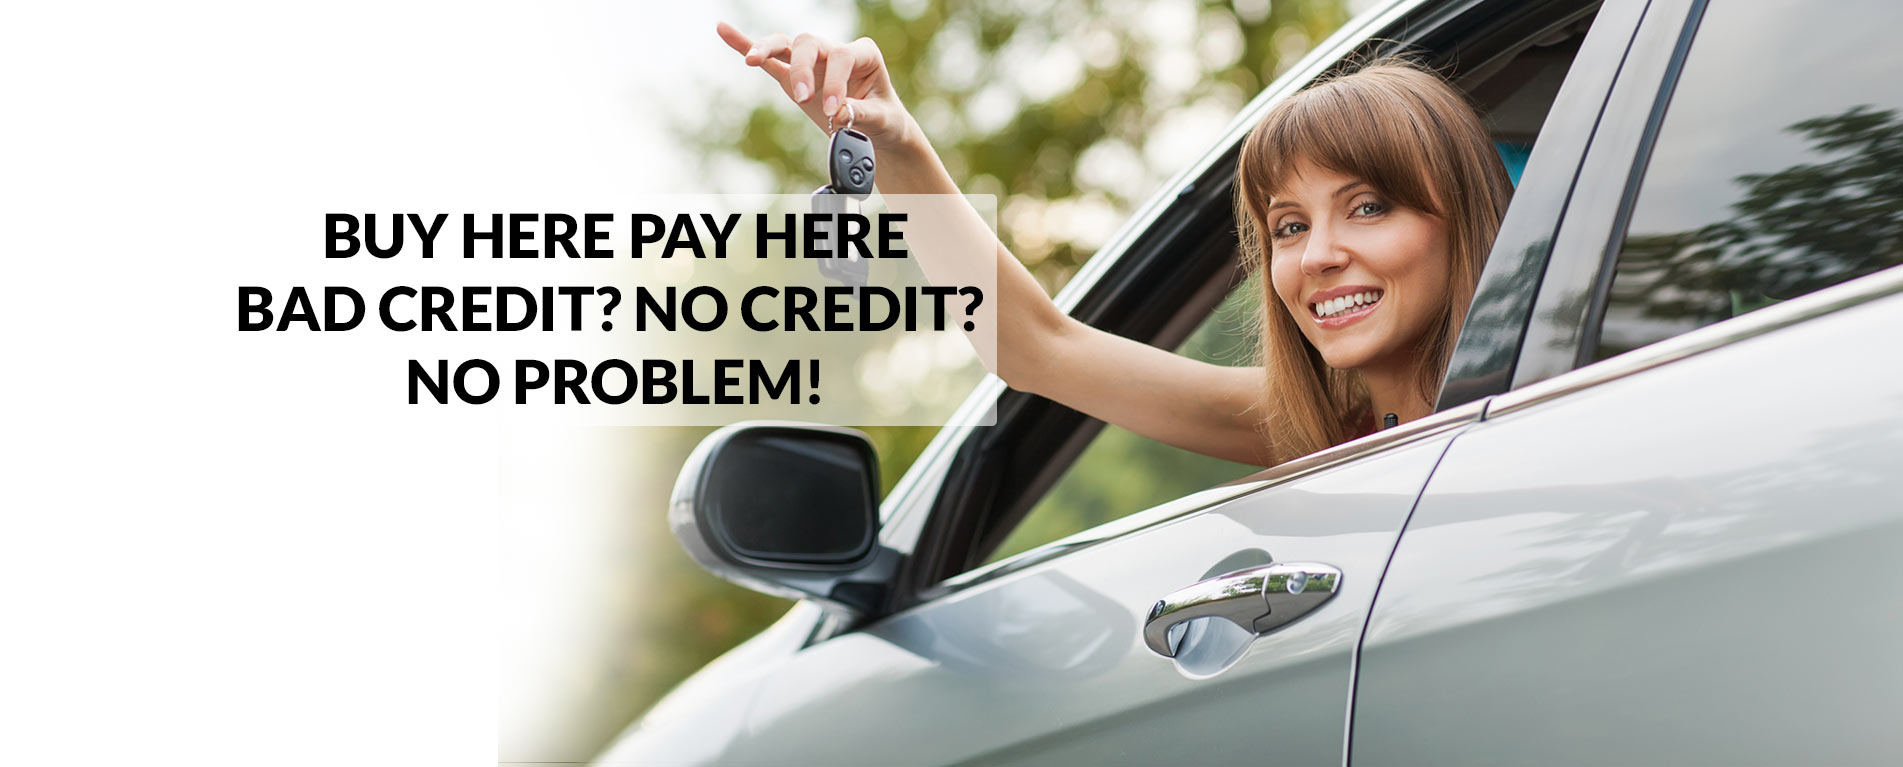 Used cars for sale in Hartford | Route 44 Auto Sales & Repairs LLC. Hartford CT